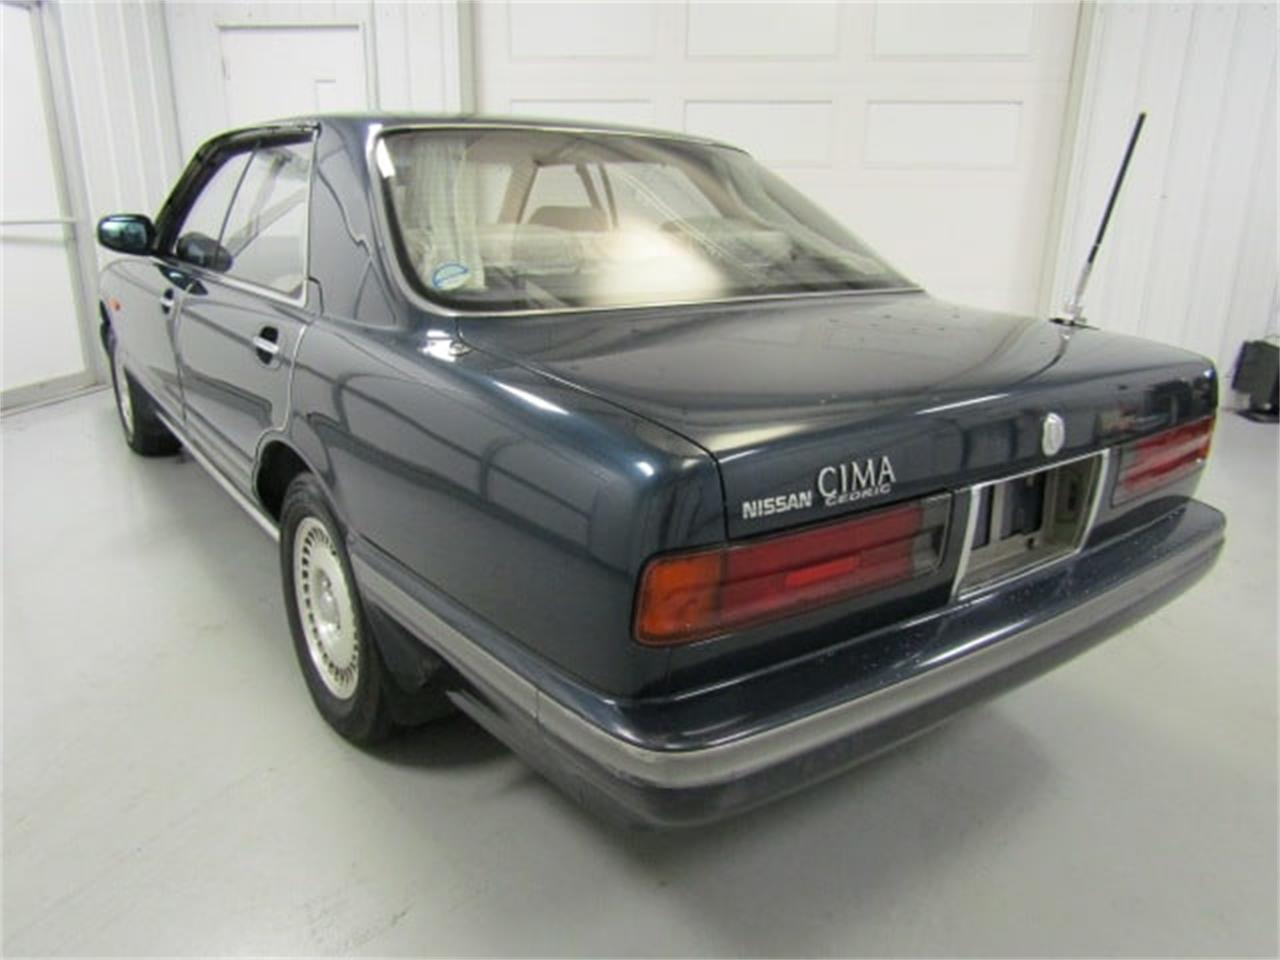 Large Picture of '91 Nissan Cima - $5,959.00 - JZ2X